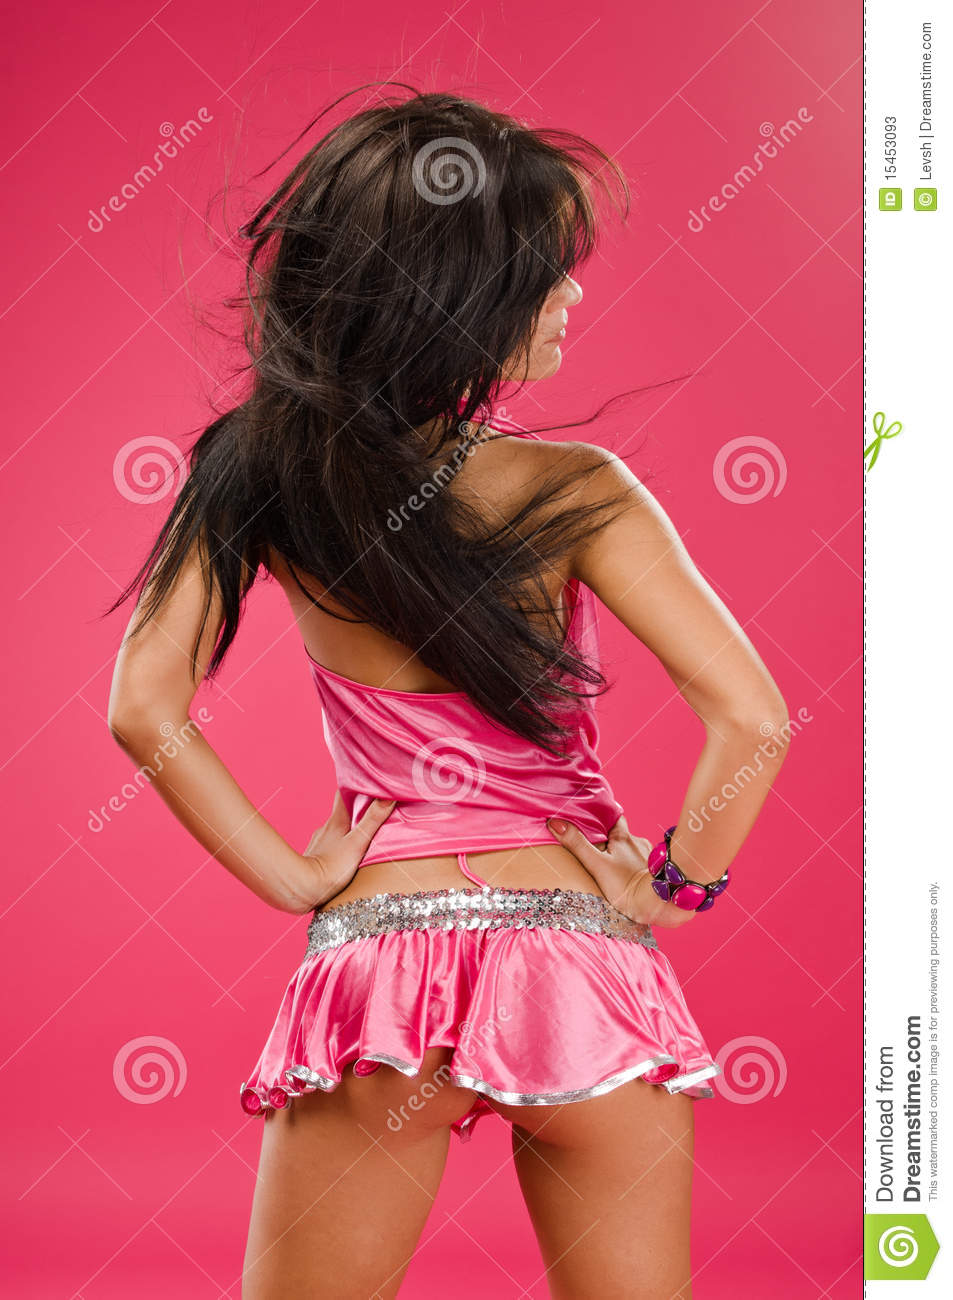 Download Go-go dancer stock image. Image of portrait, young, female - 15453093